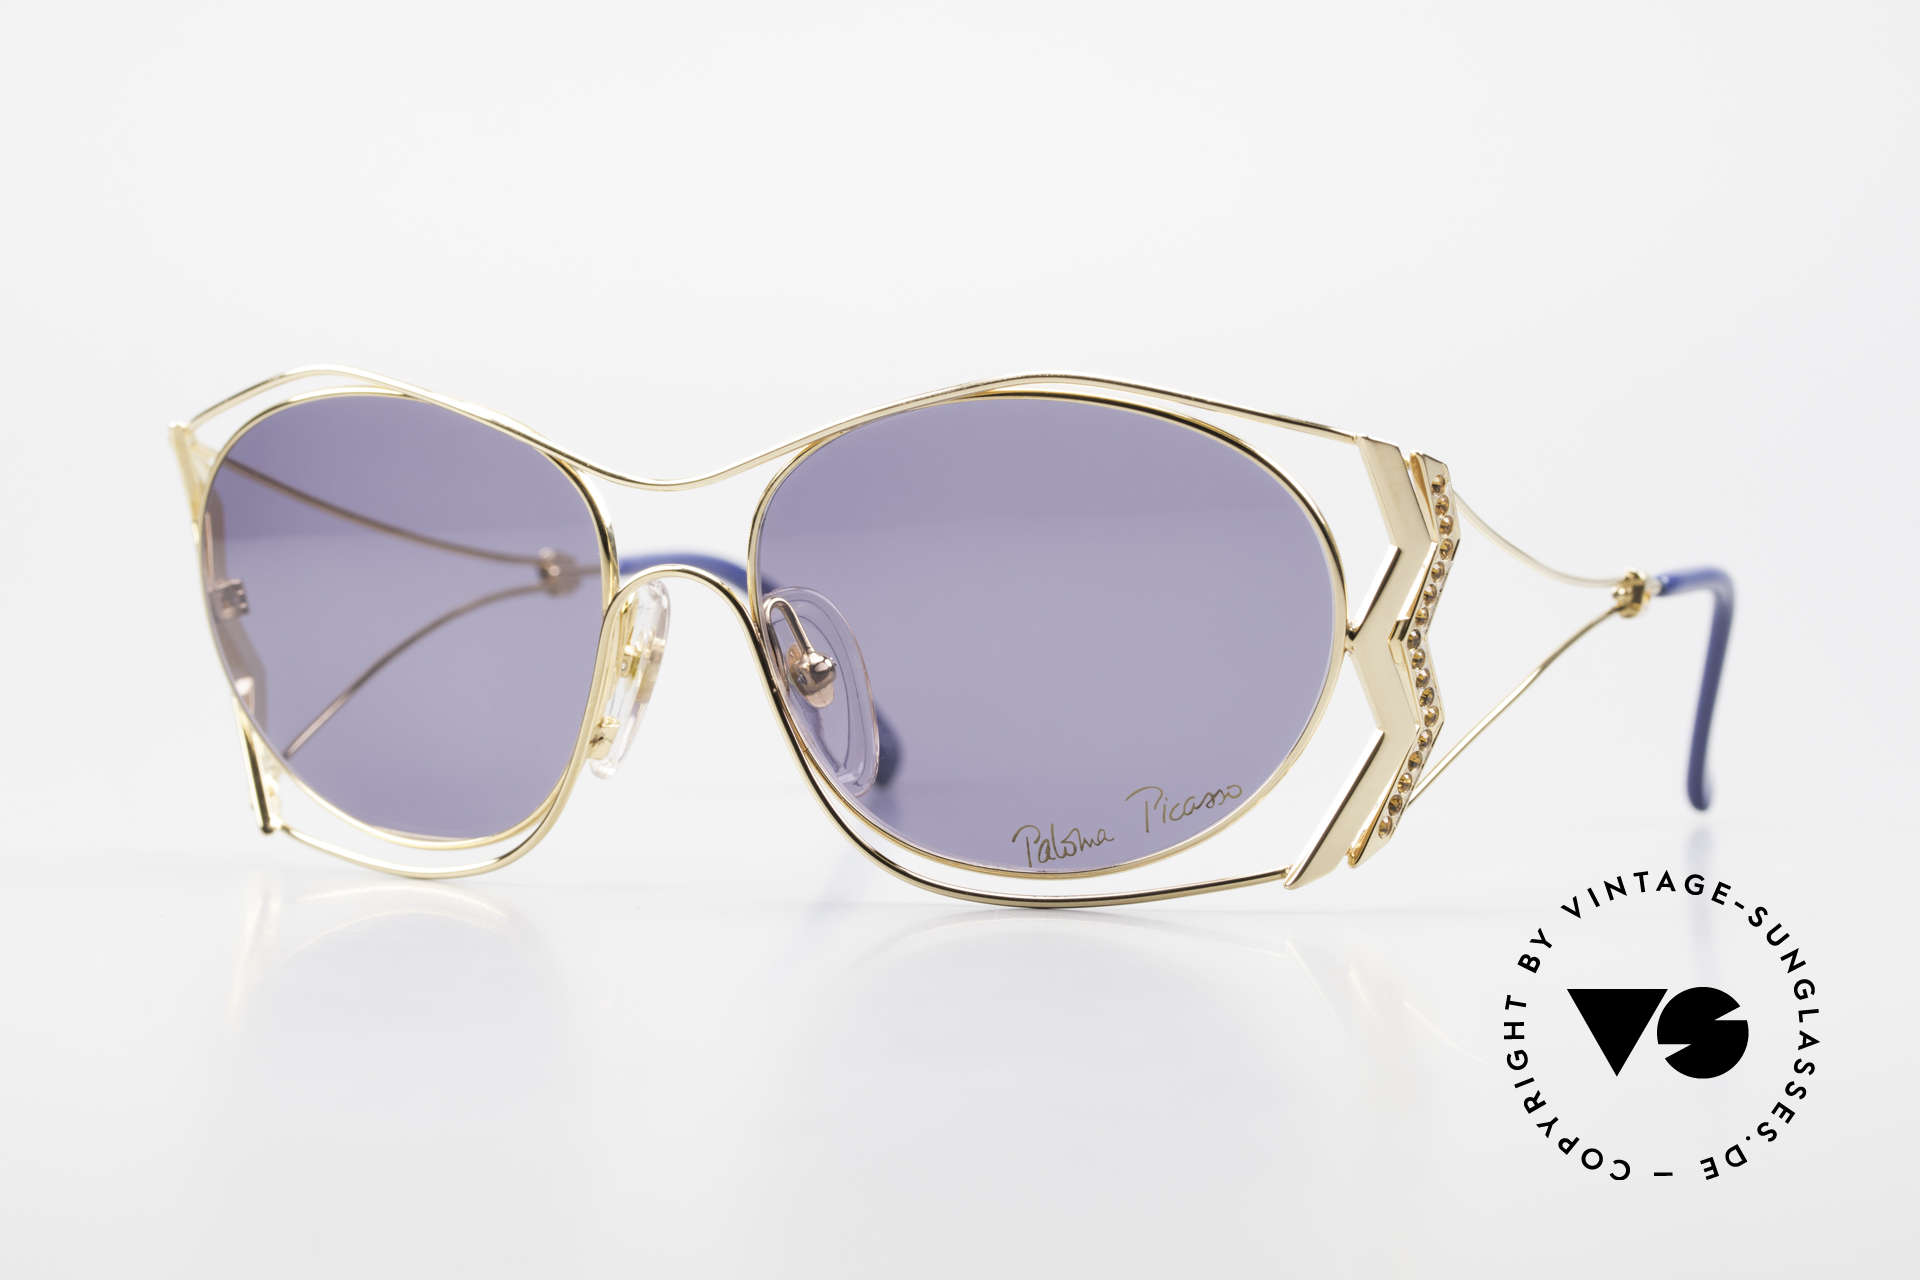 Paloma Picasso 3707 90's Sunglasses Gold-Plated, Picasso 90's sunglasses; gold-plated and TOPAZ gems, Made for Women